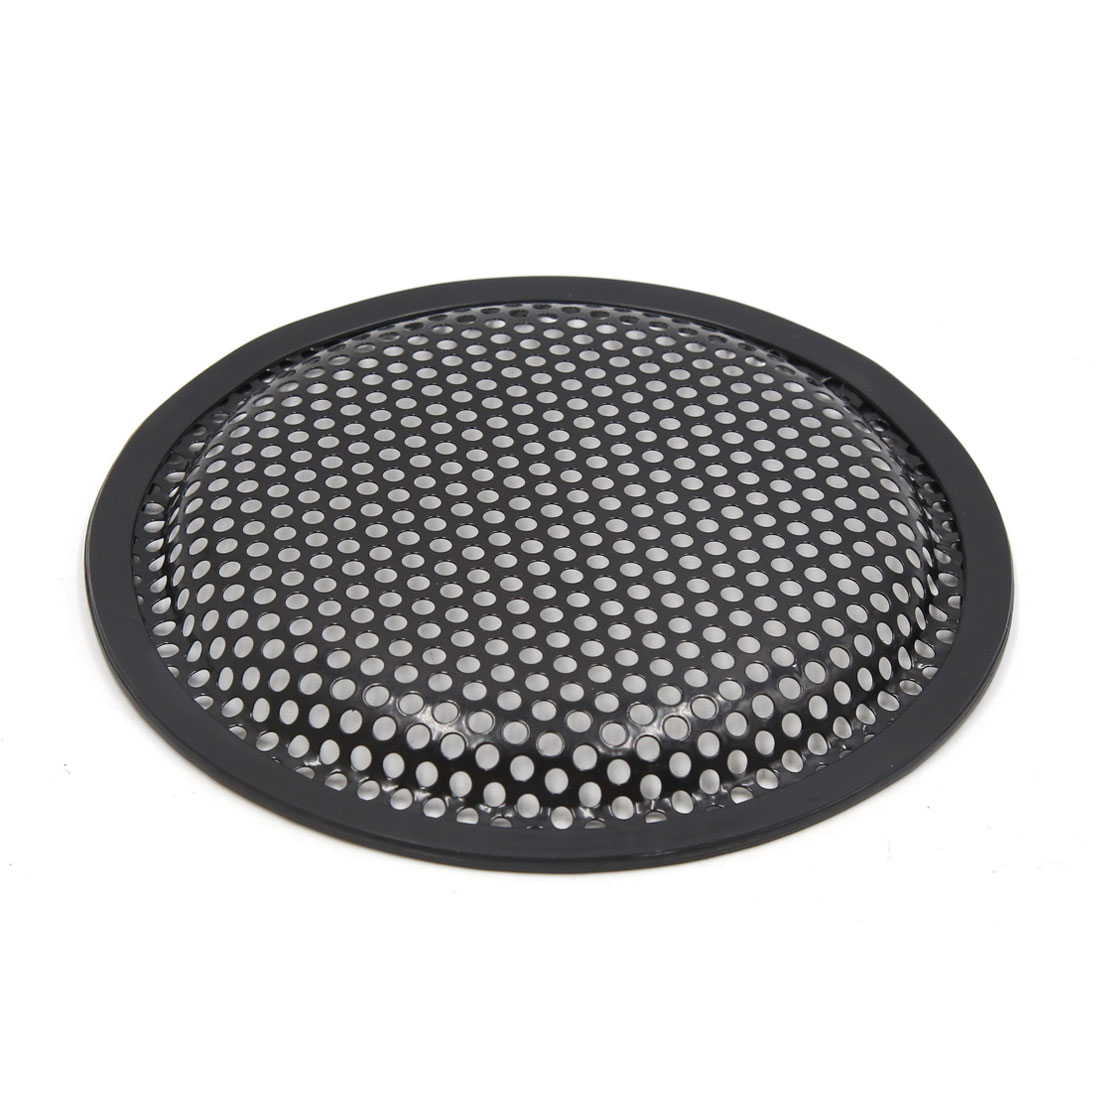 """6.5"""" Car Stereo Metal Mesh Speaker Subwoofer Grill Cover Guard Protector"""